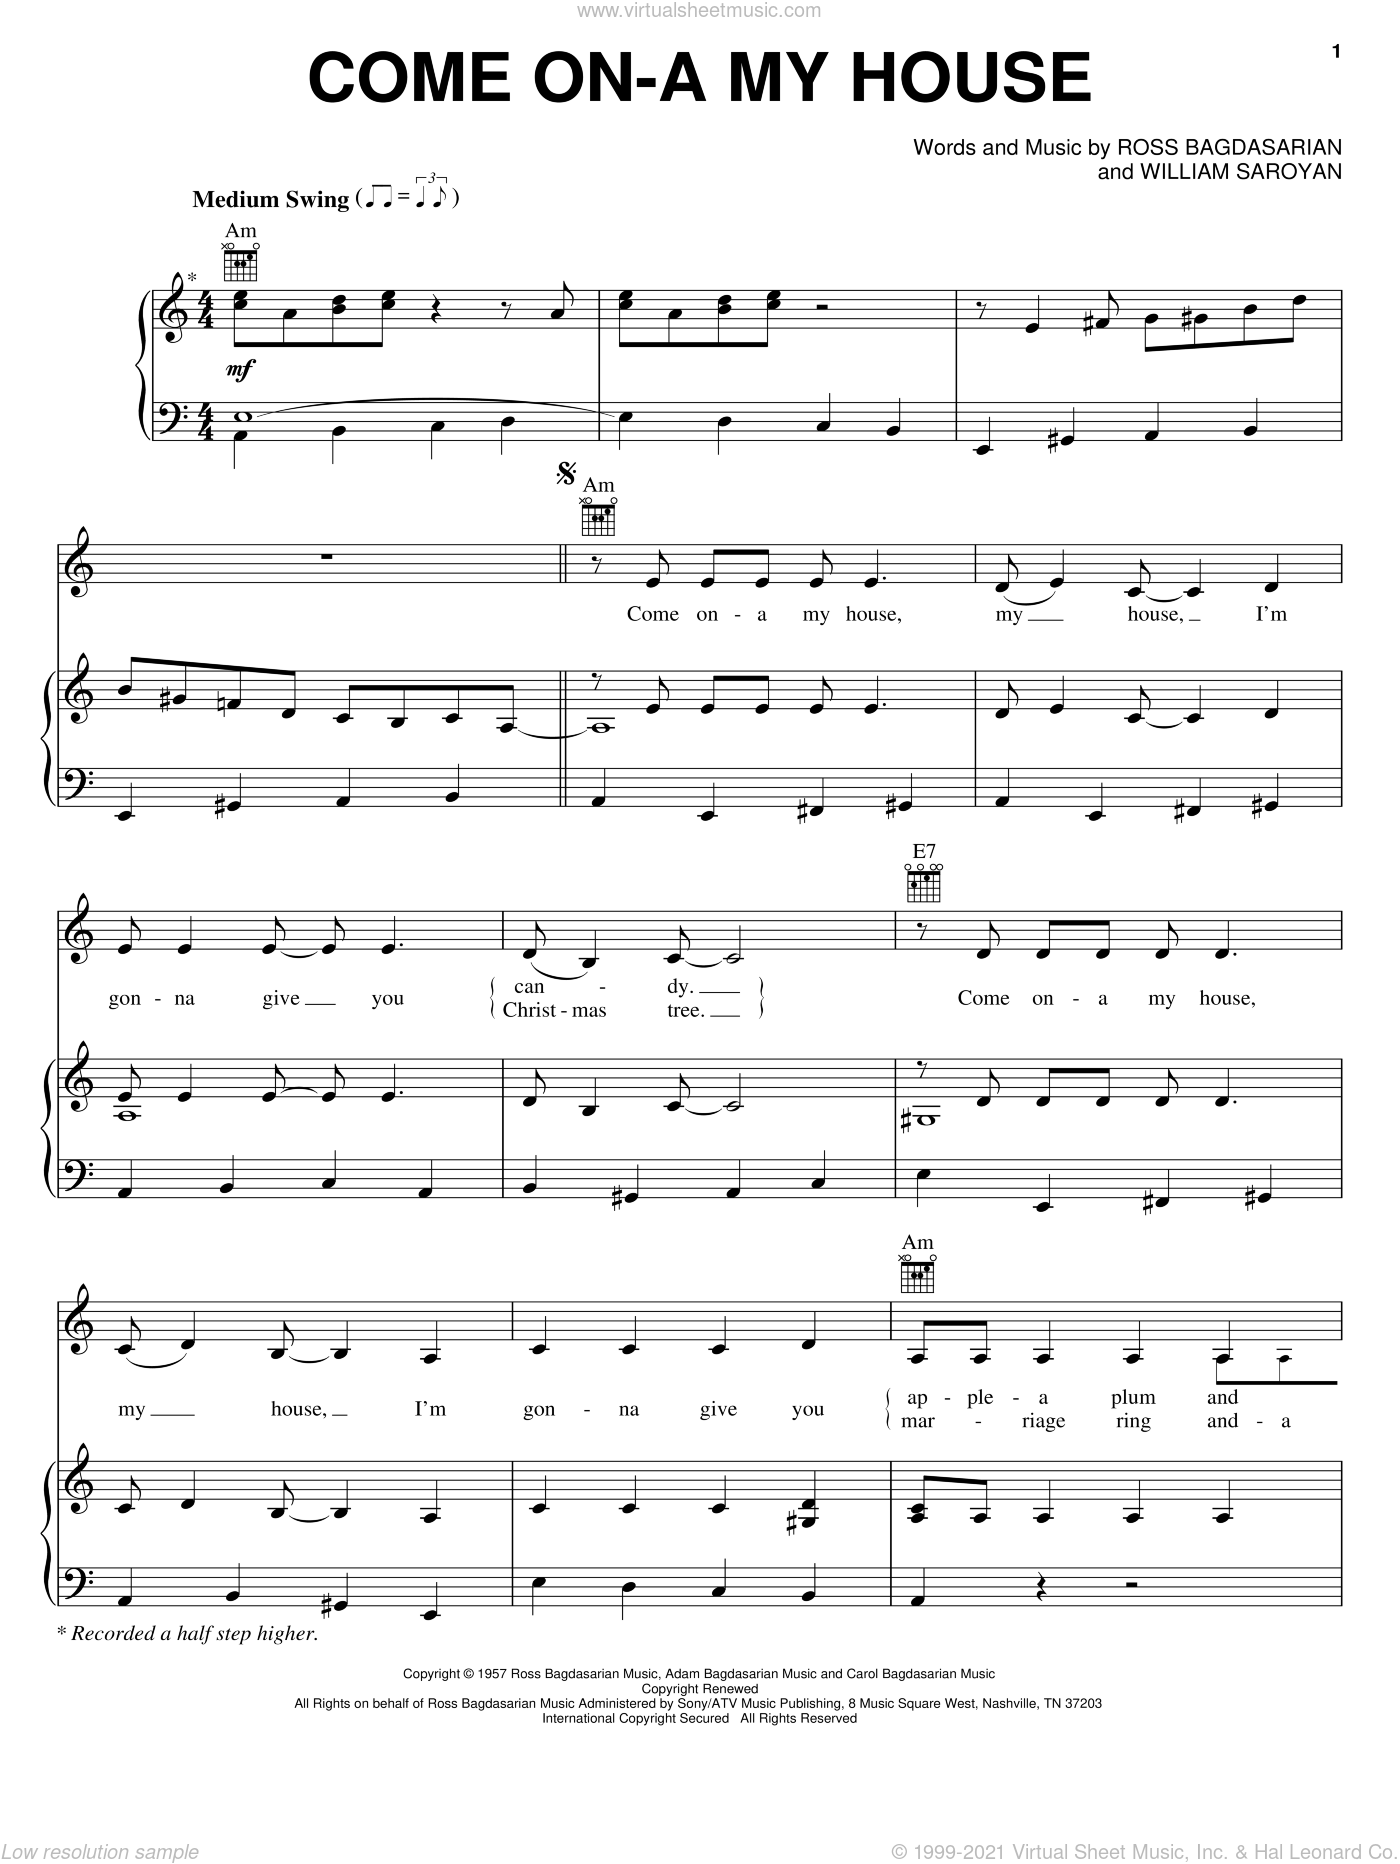 Come On-A My House sheet music for voice, piano or guitar by William Saroyan